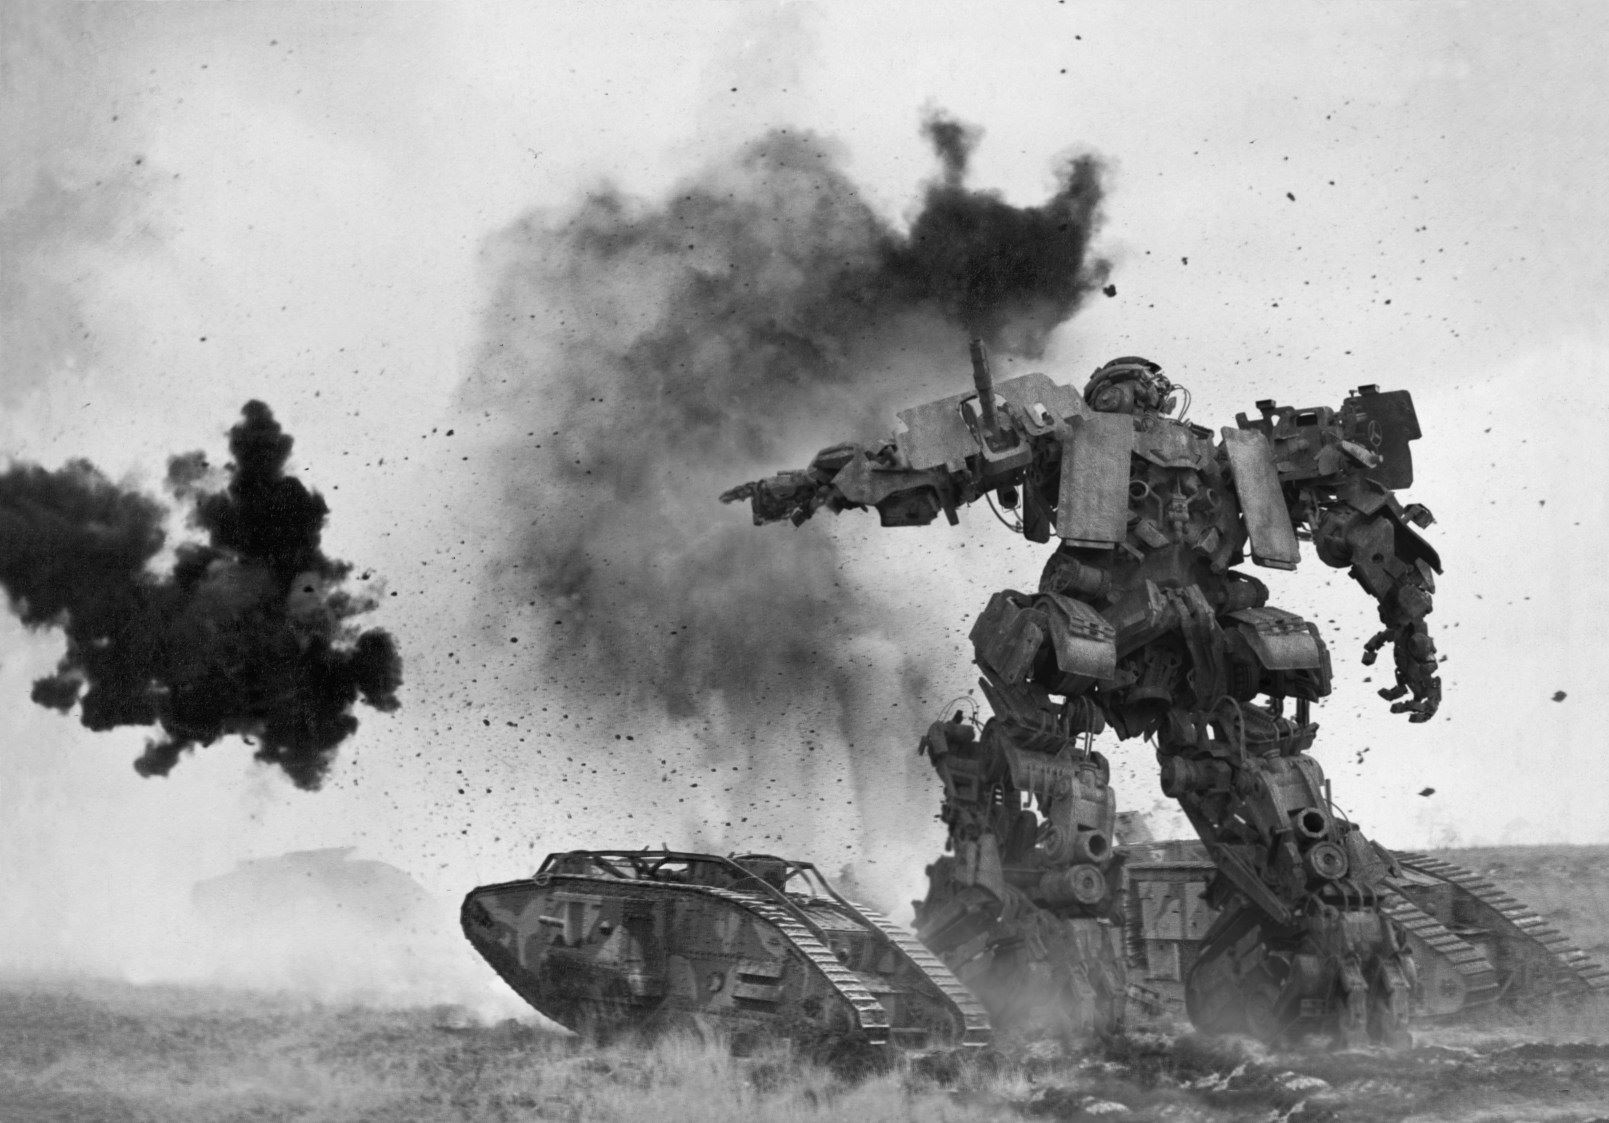 check-out-bumblebee-in-wwii-in-new-transformers-the-last-knight-poster-with-historical-photos2